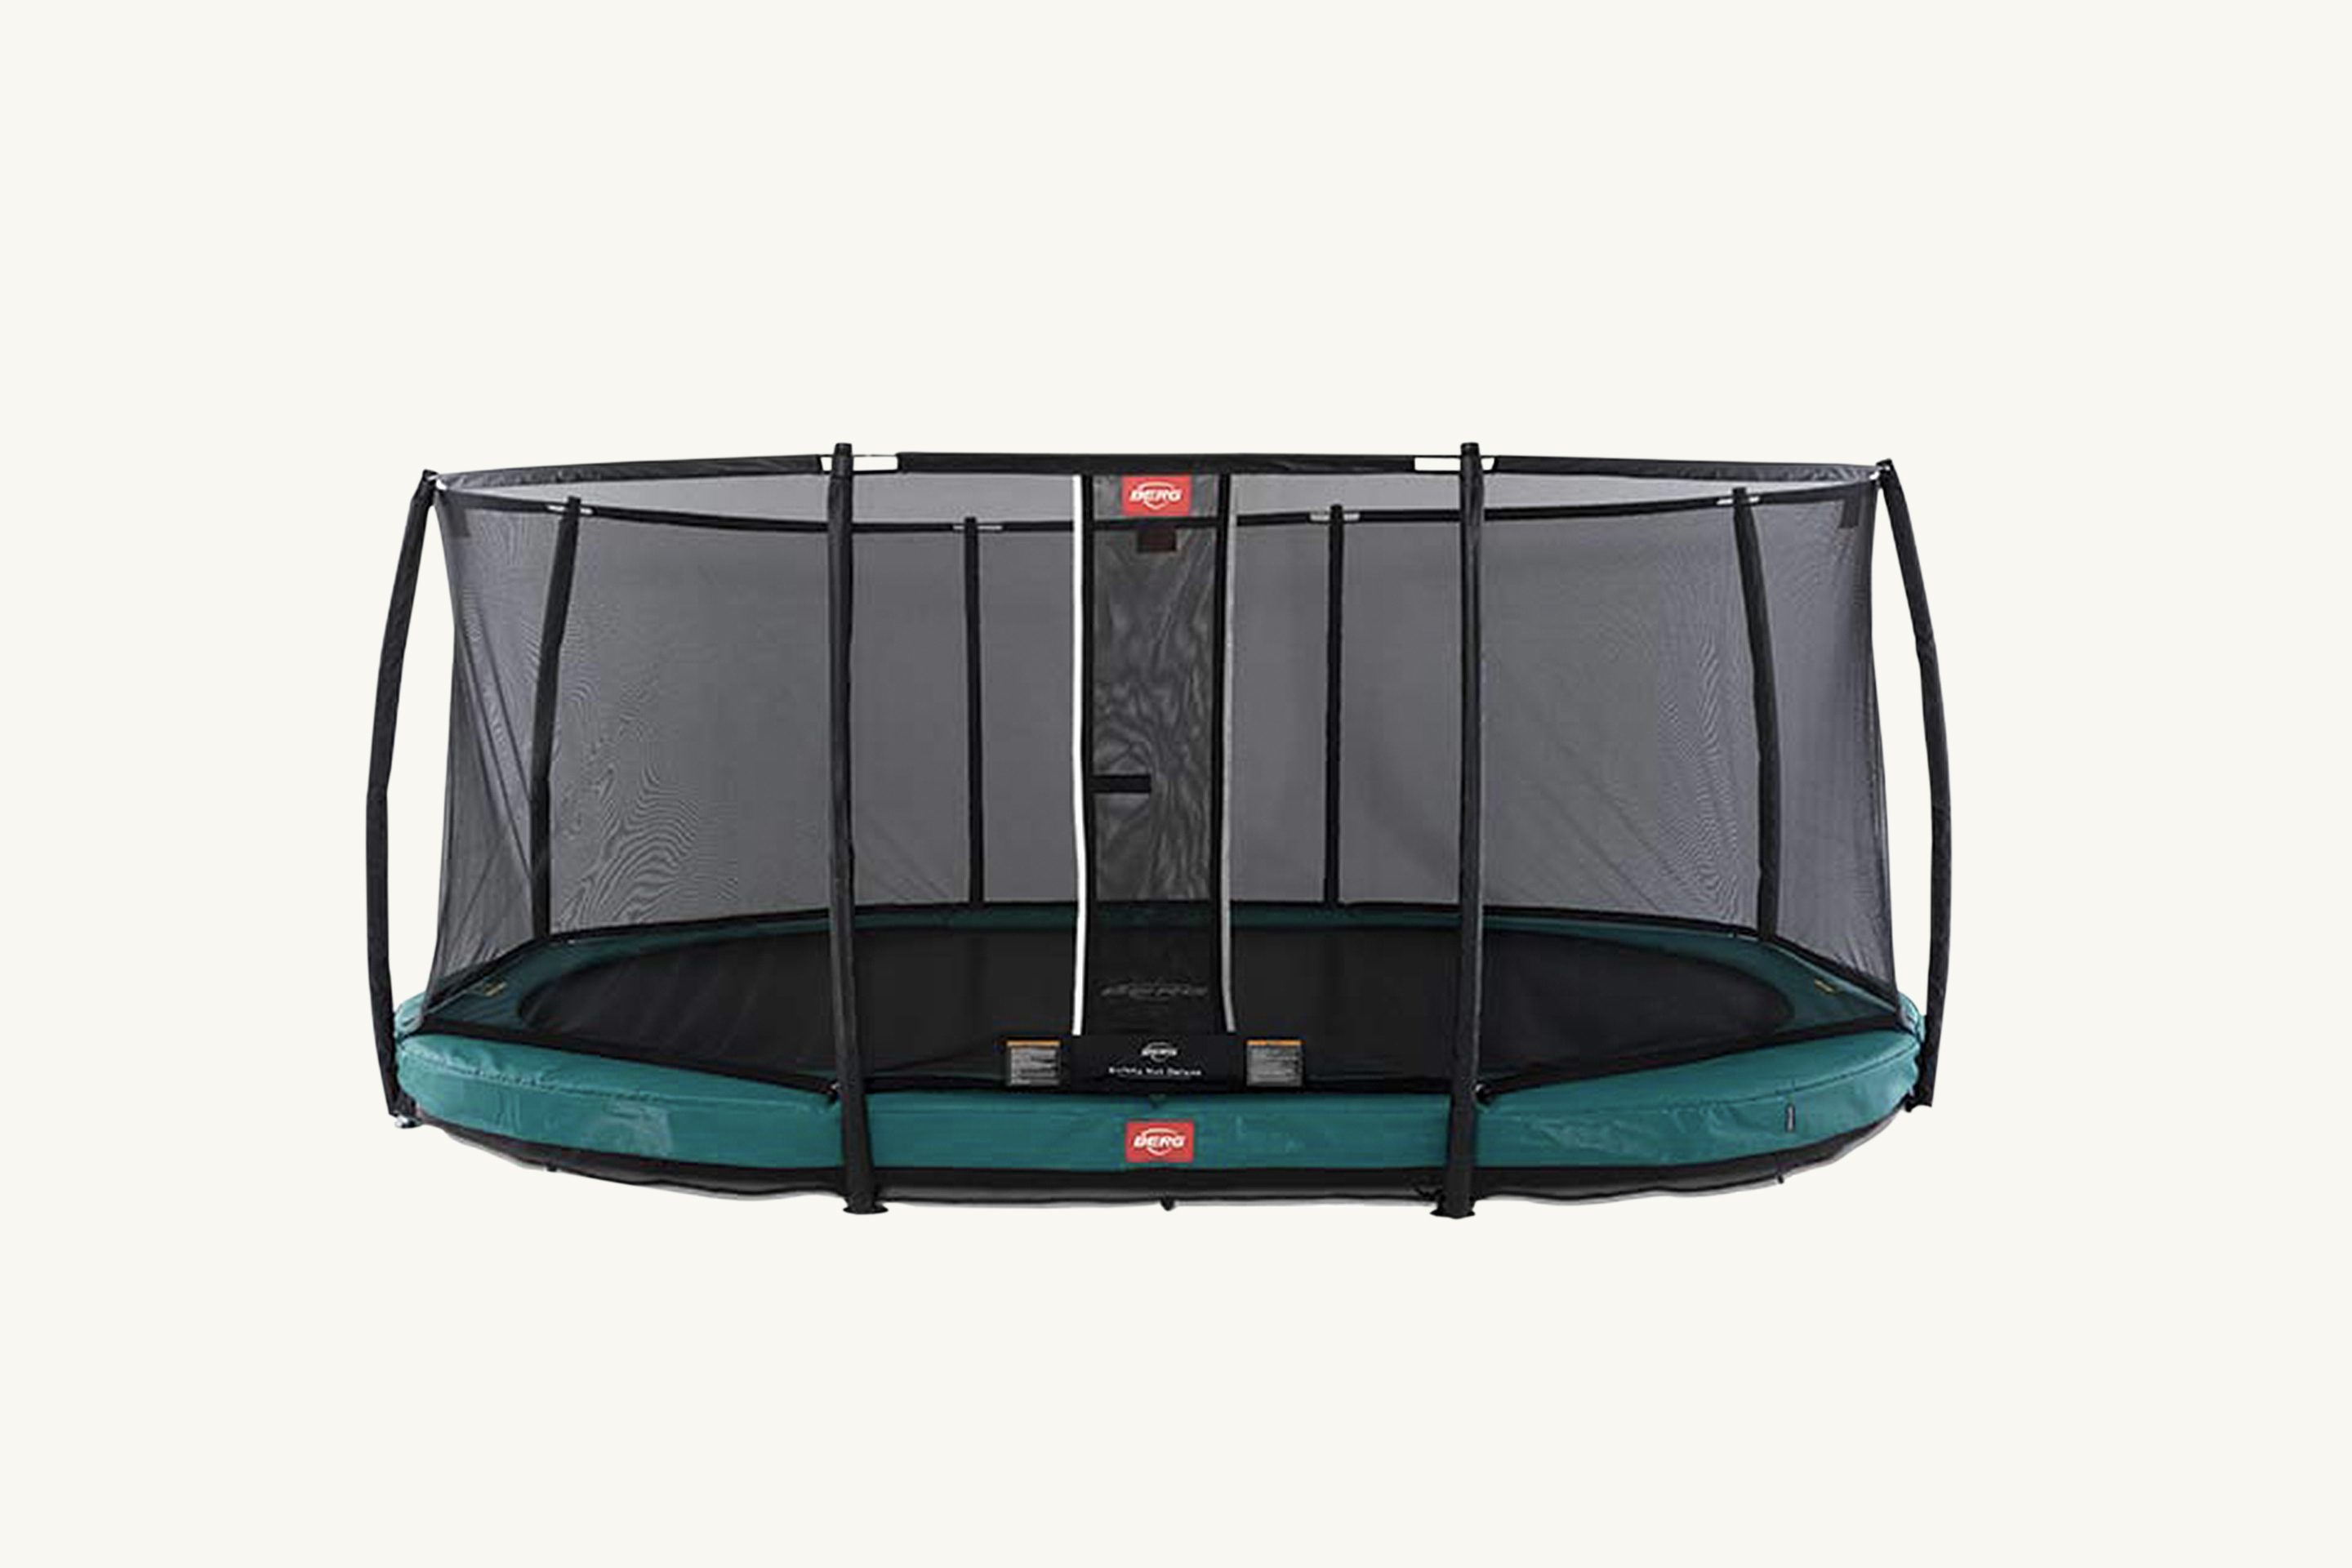 BERG Trampoline Inground Champion Oval 17ft with Safety Enclosure Net